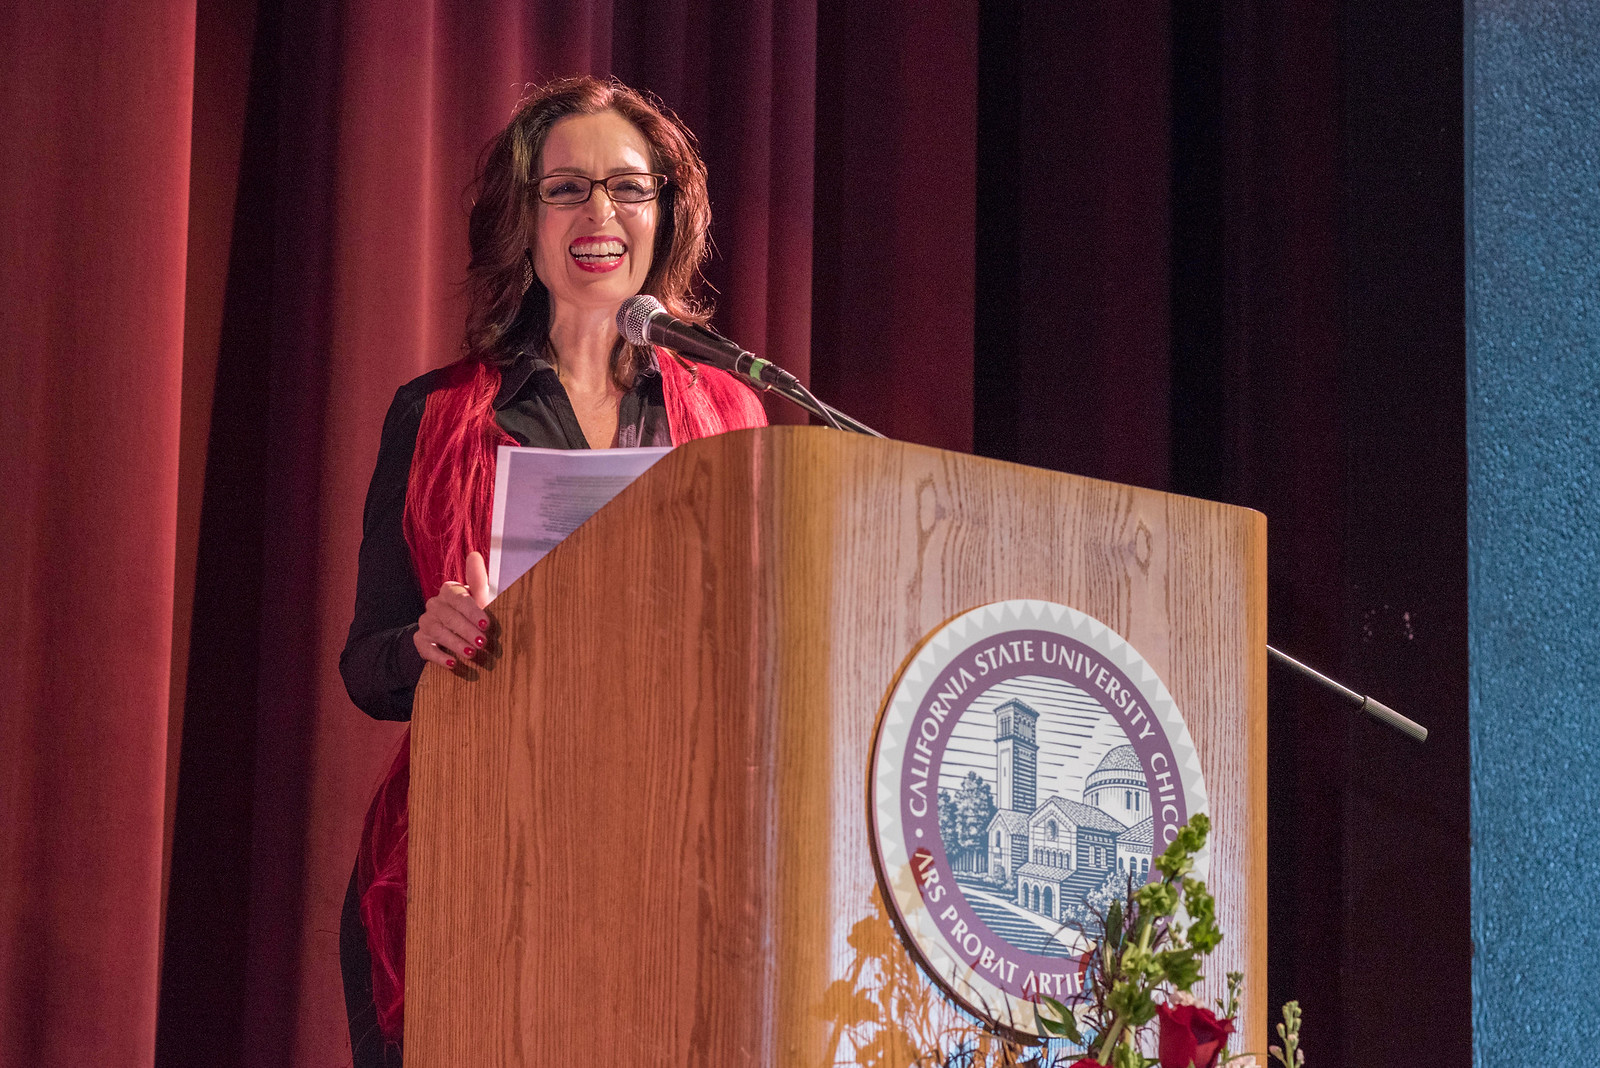 Distinguished Alumni J'Anna Jacoby talks to guests and honorees during the Distinguished Alumni Dinner on Friday, March 24, 2017 in Chico, Calif. (Jason Halley/University Photographer)